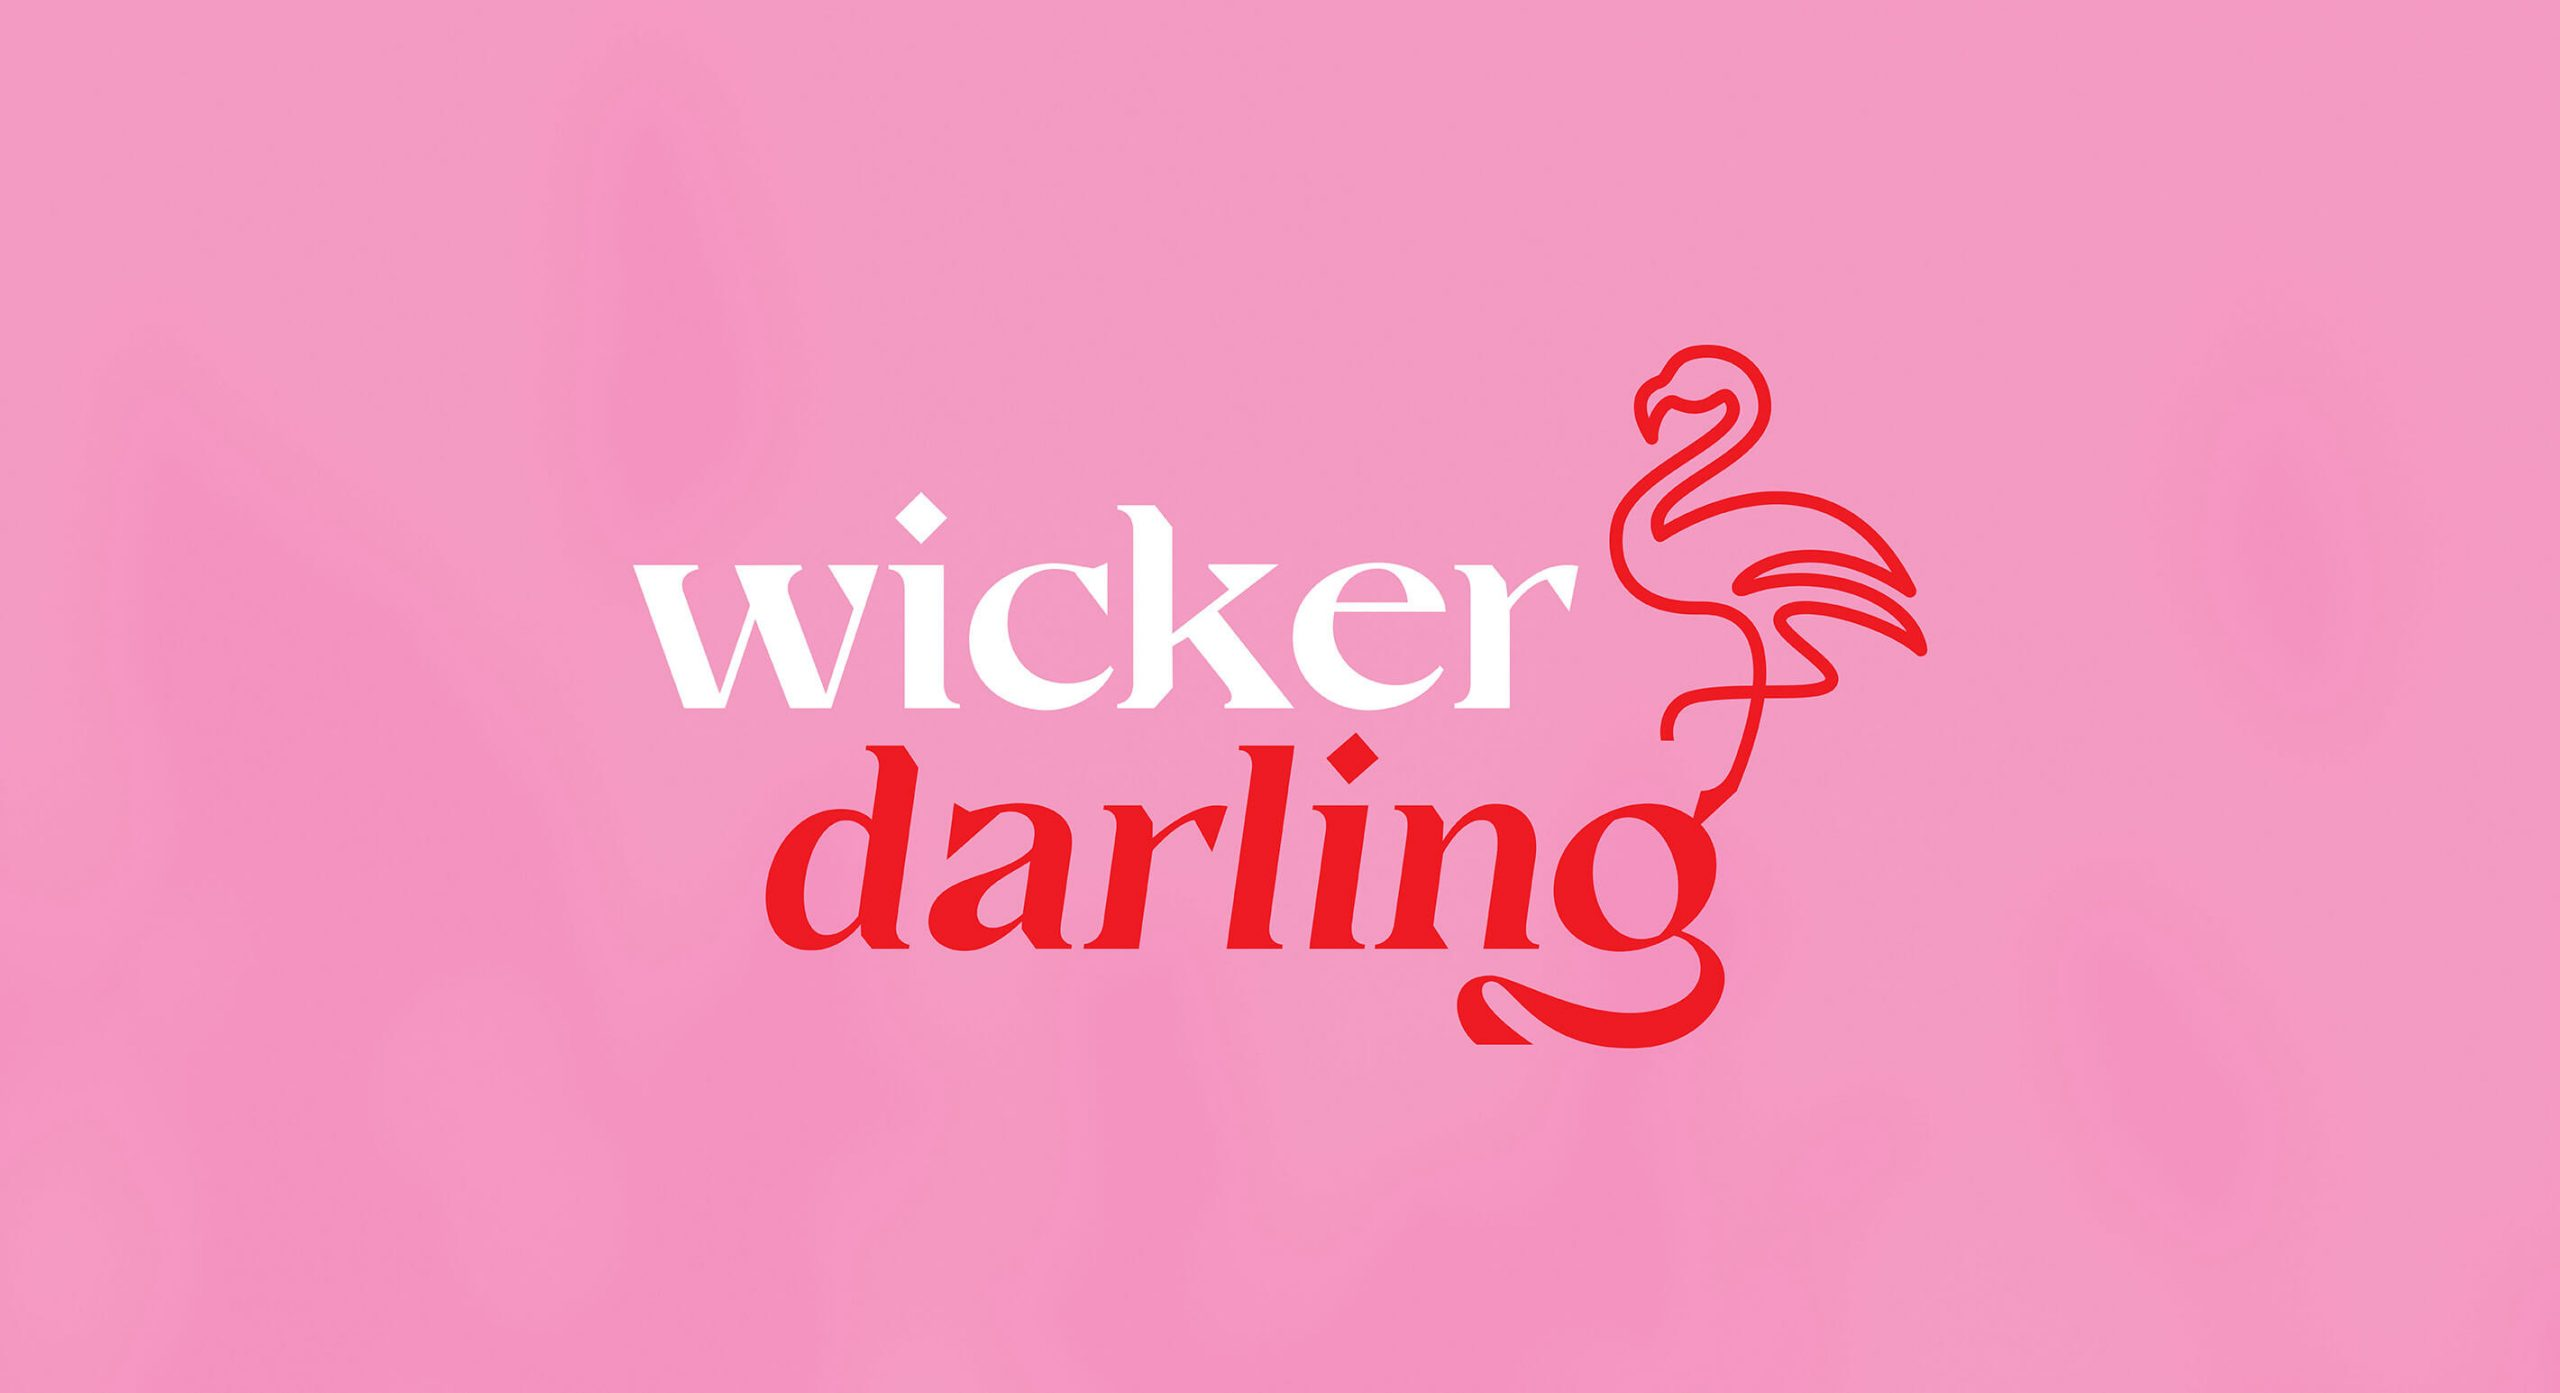 Pink background with red and white Wicker Darling logo. It has decorative curves and a falmingo shaped icon